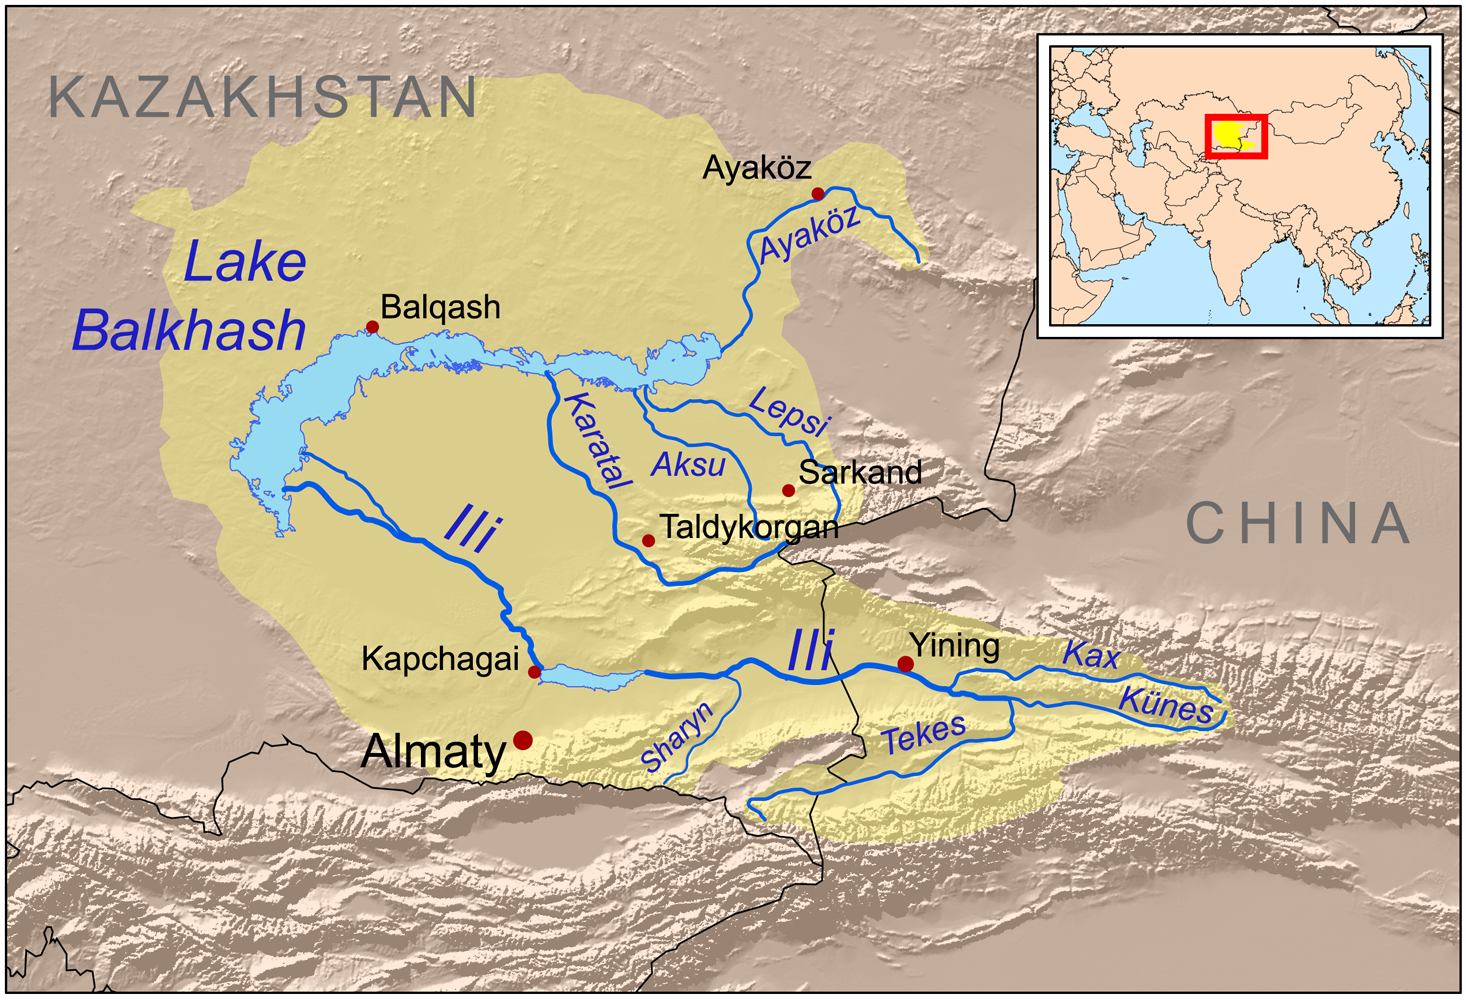 http://upload.wikimedia.org/wikipedia/commons/d/d6/Lakebalkhashbasinmap.png